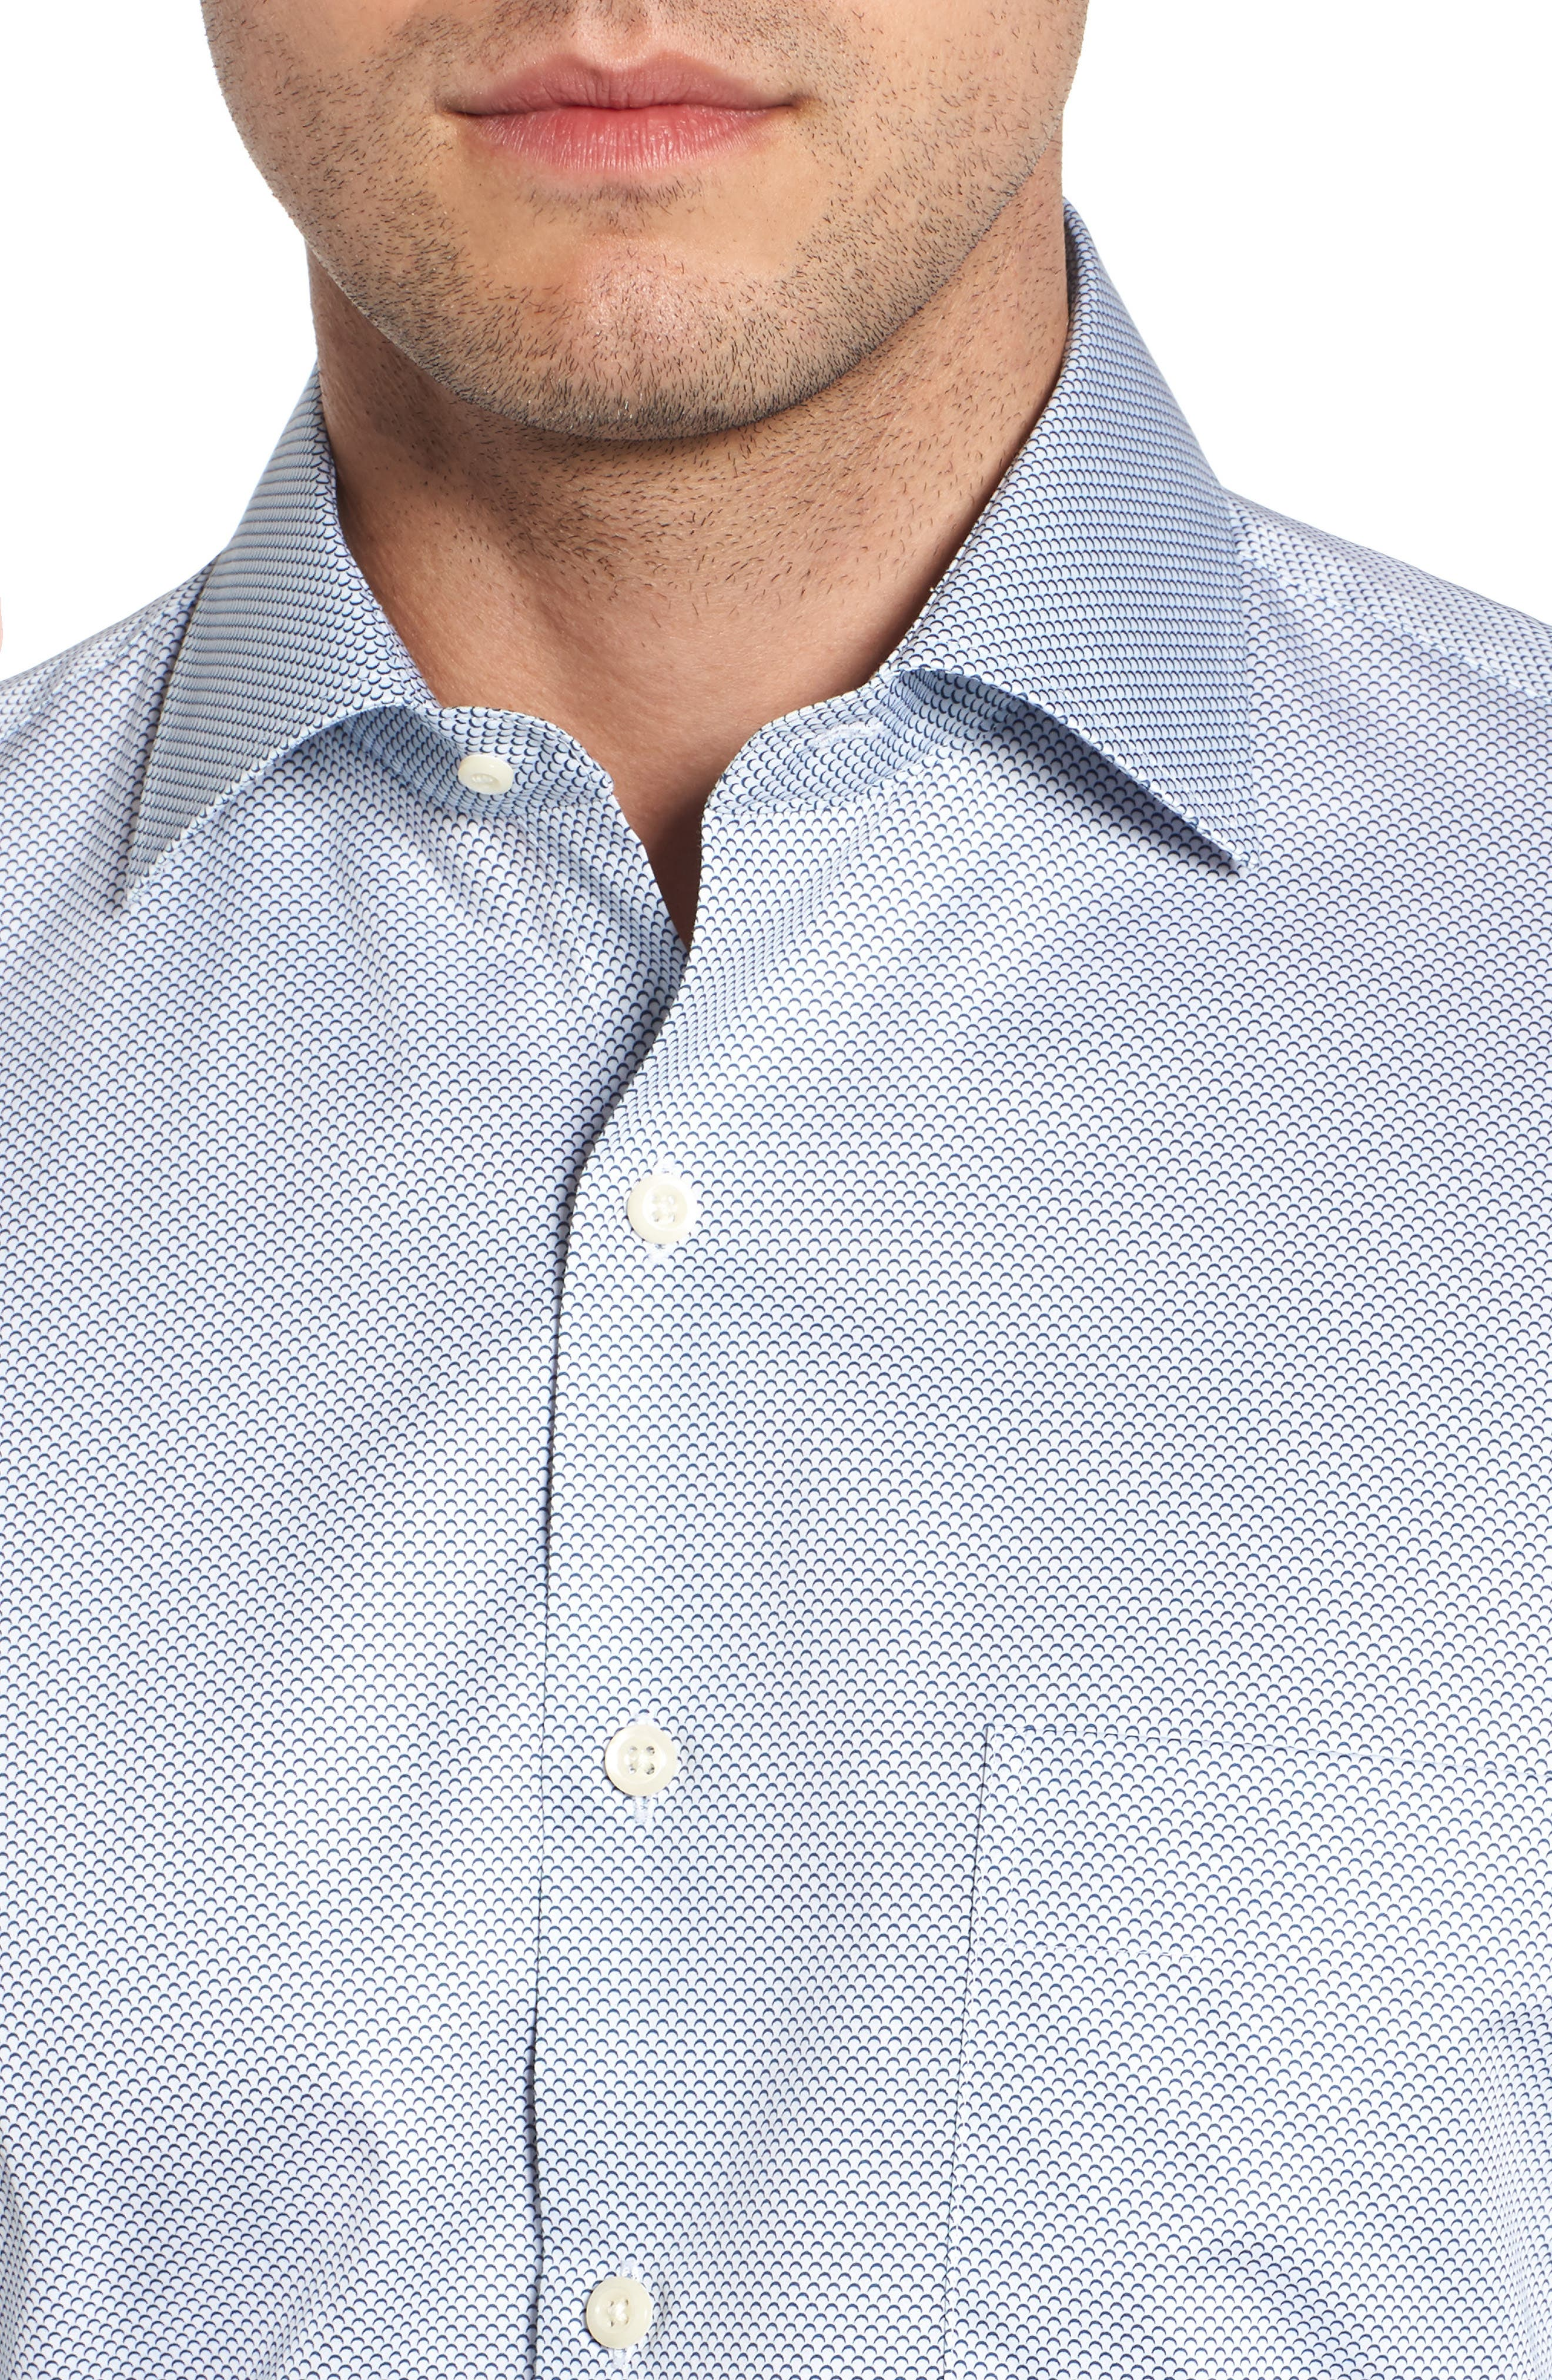 Off the Scale Print Sport Shirt,                             Alternate thumbnail 2, color,                             White